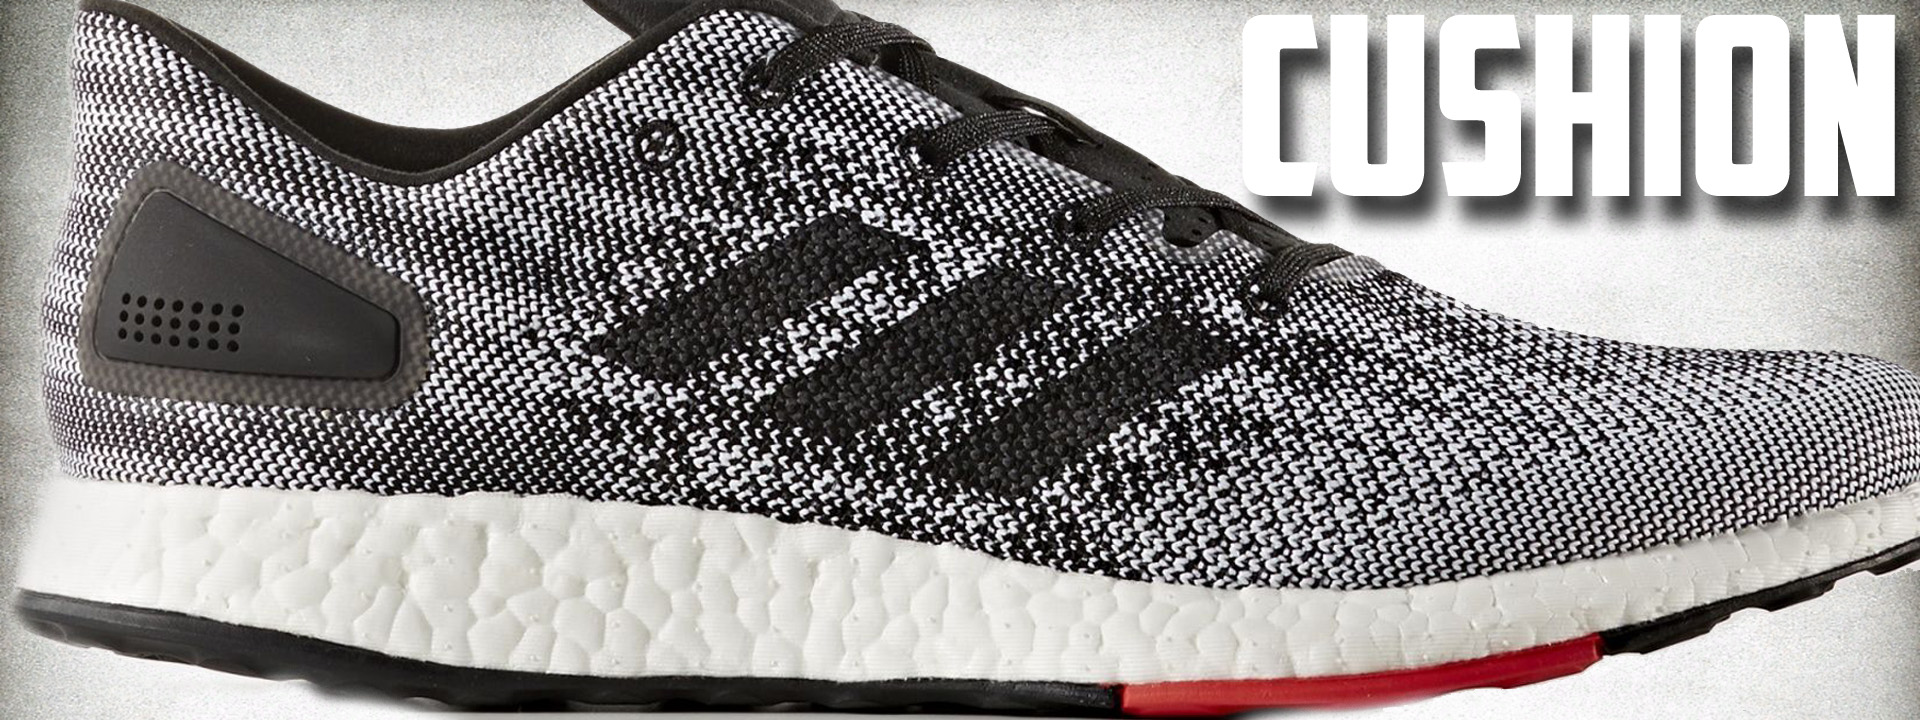 A Detailed Look at the adidas Pure Boost